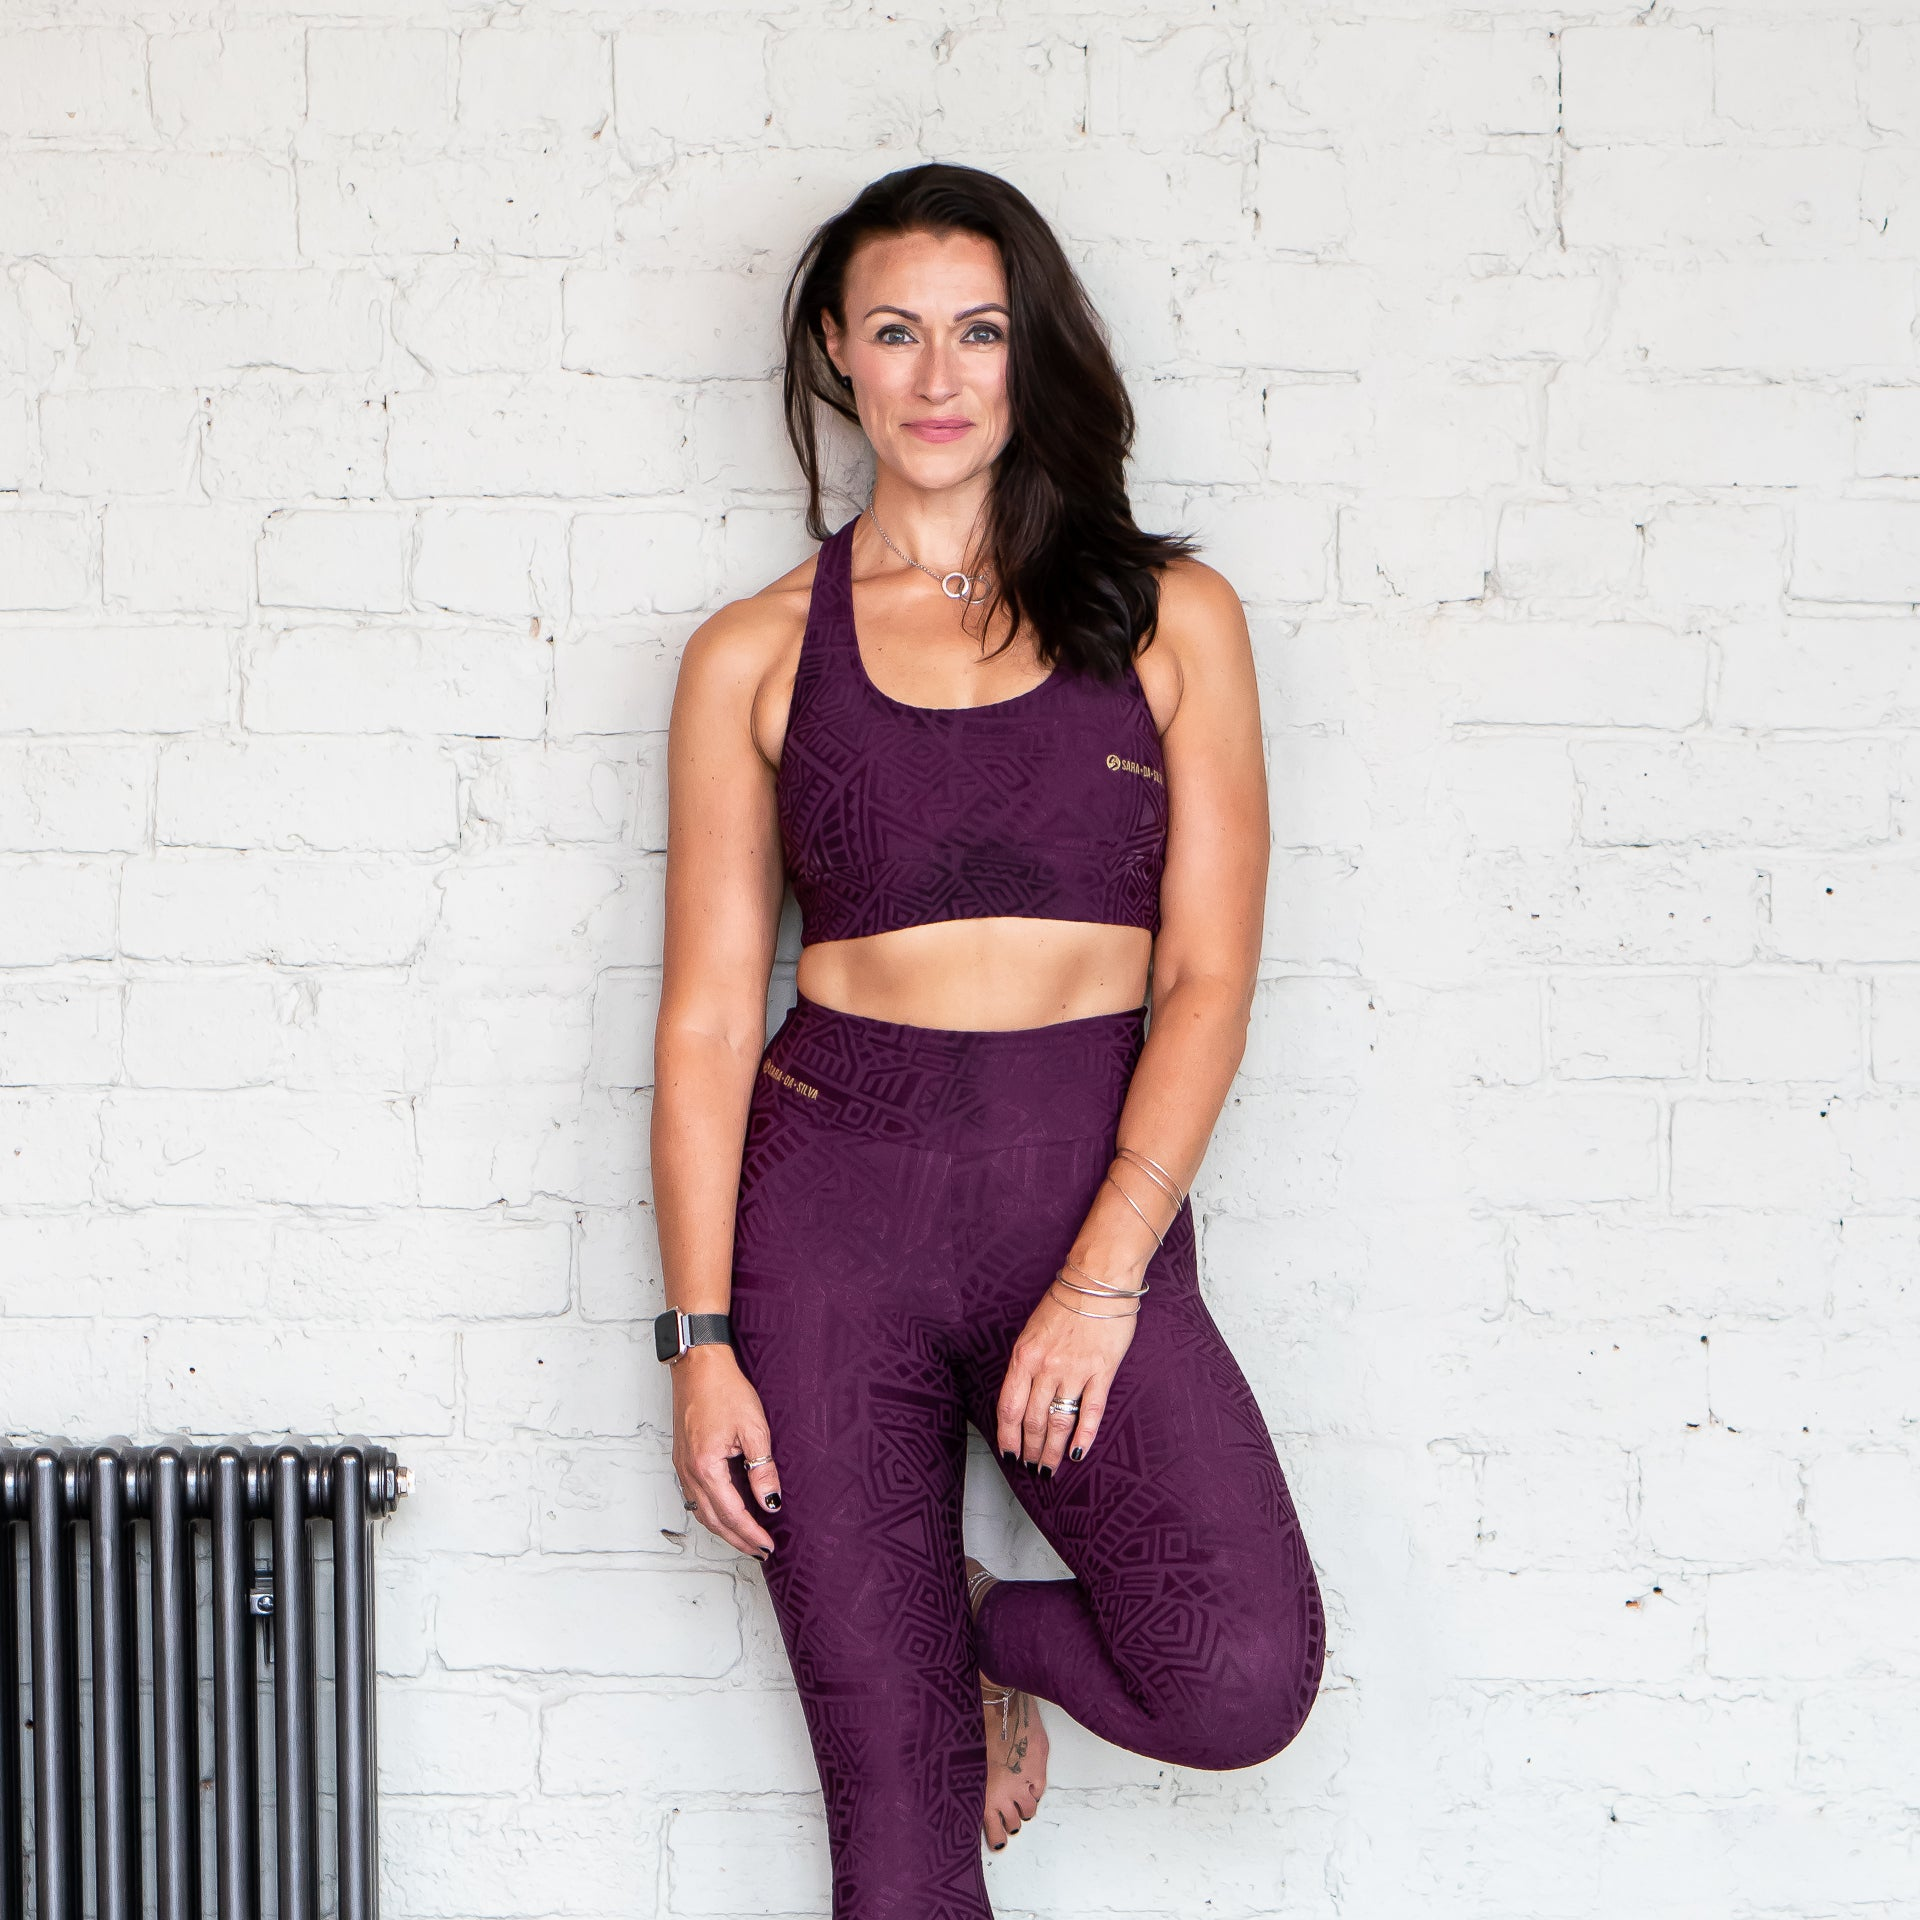 A fit lady with brown hair leaning against a brick wall wearing purple leggings and a sports bra from the Sara Da Silva tribe collection.